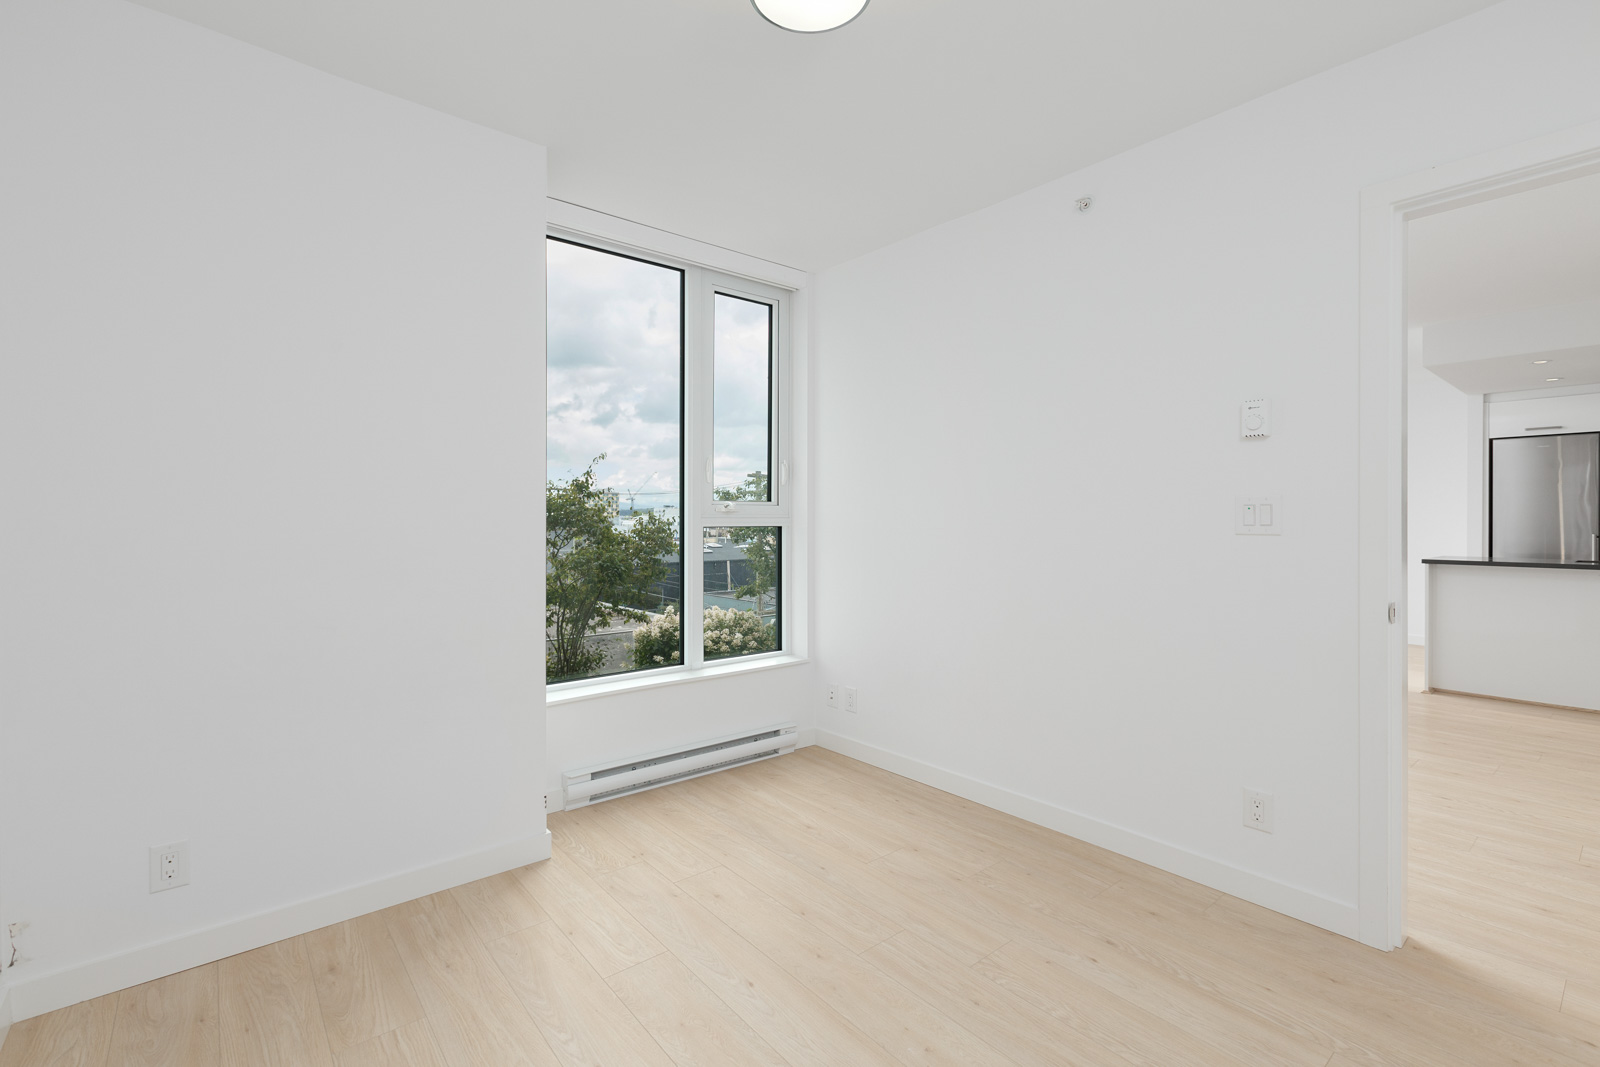 bedroom with laminated flooring and large windows